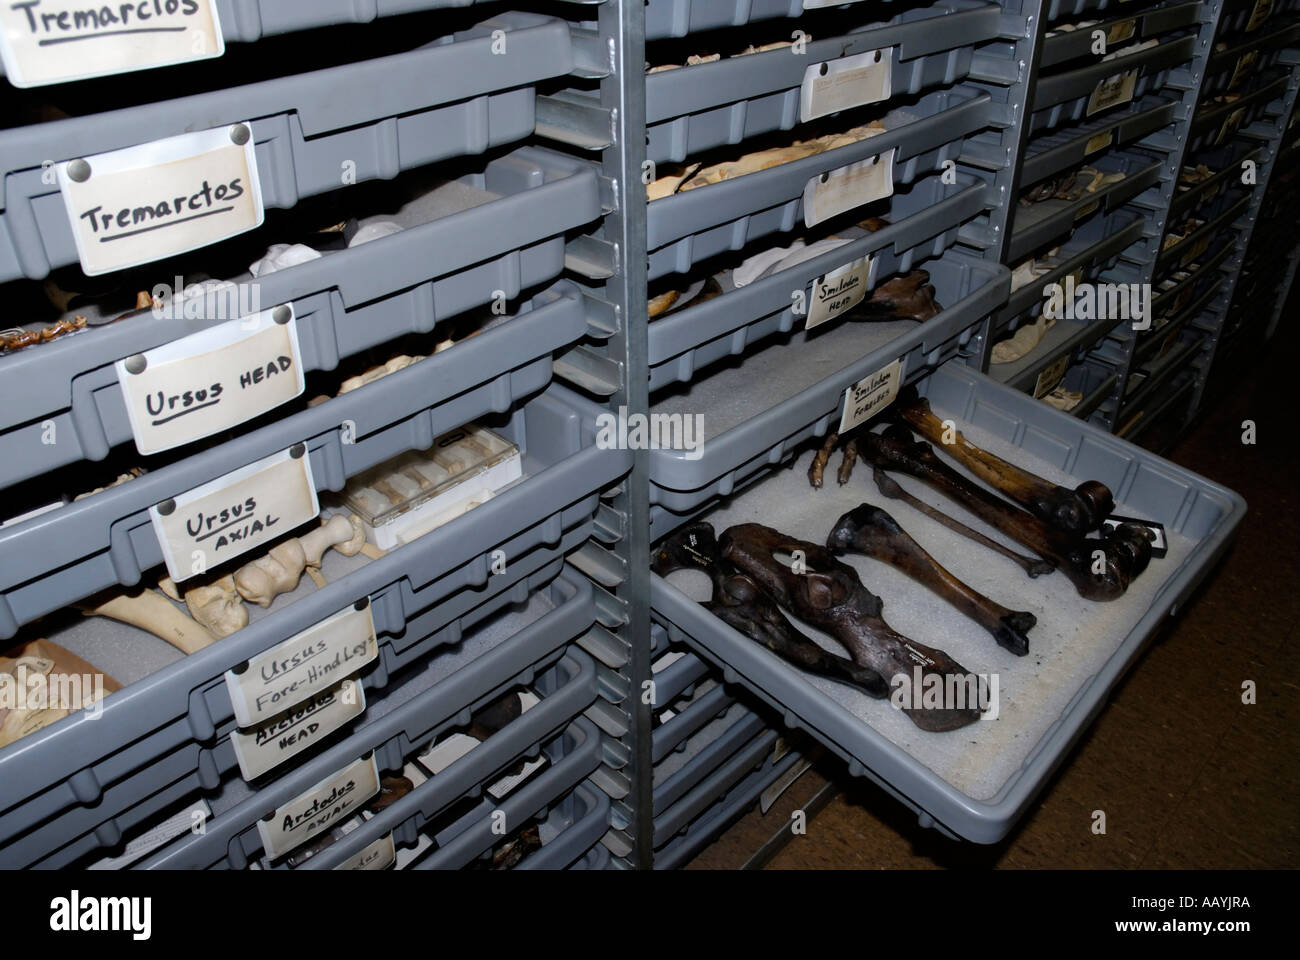 Preserved Mammal Bones From La Brea Tar Pit Excavations In Storage,  Research Lab, Page